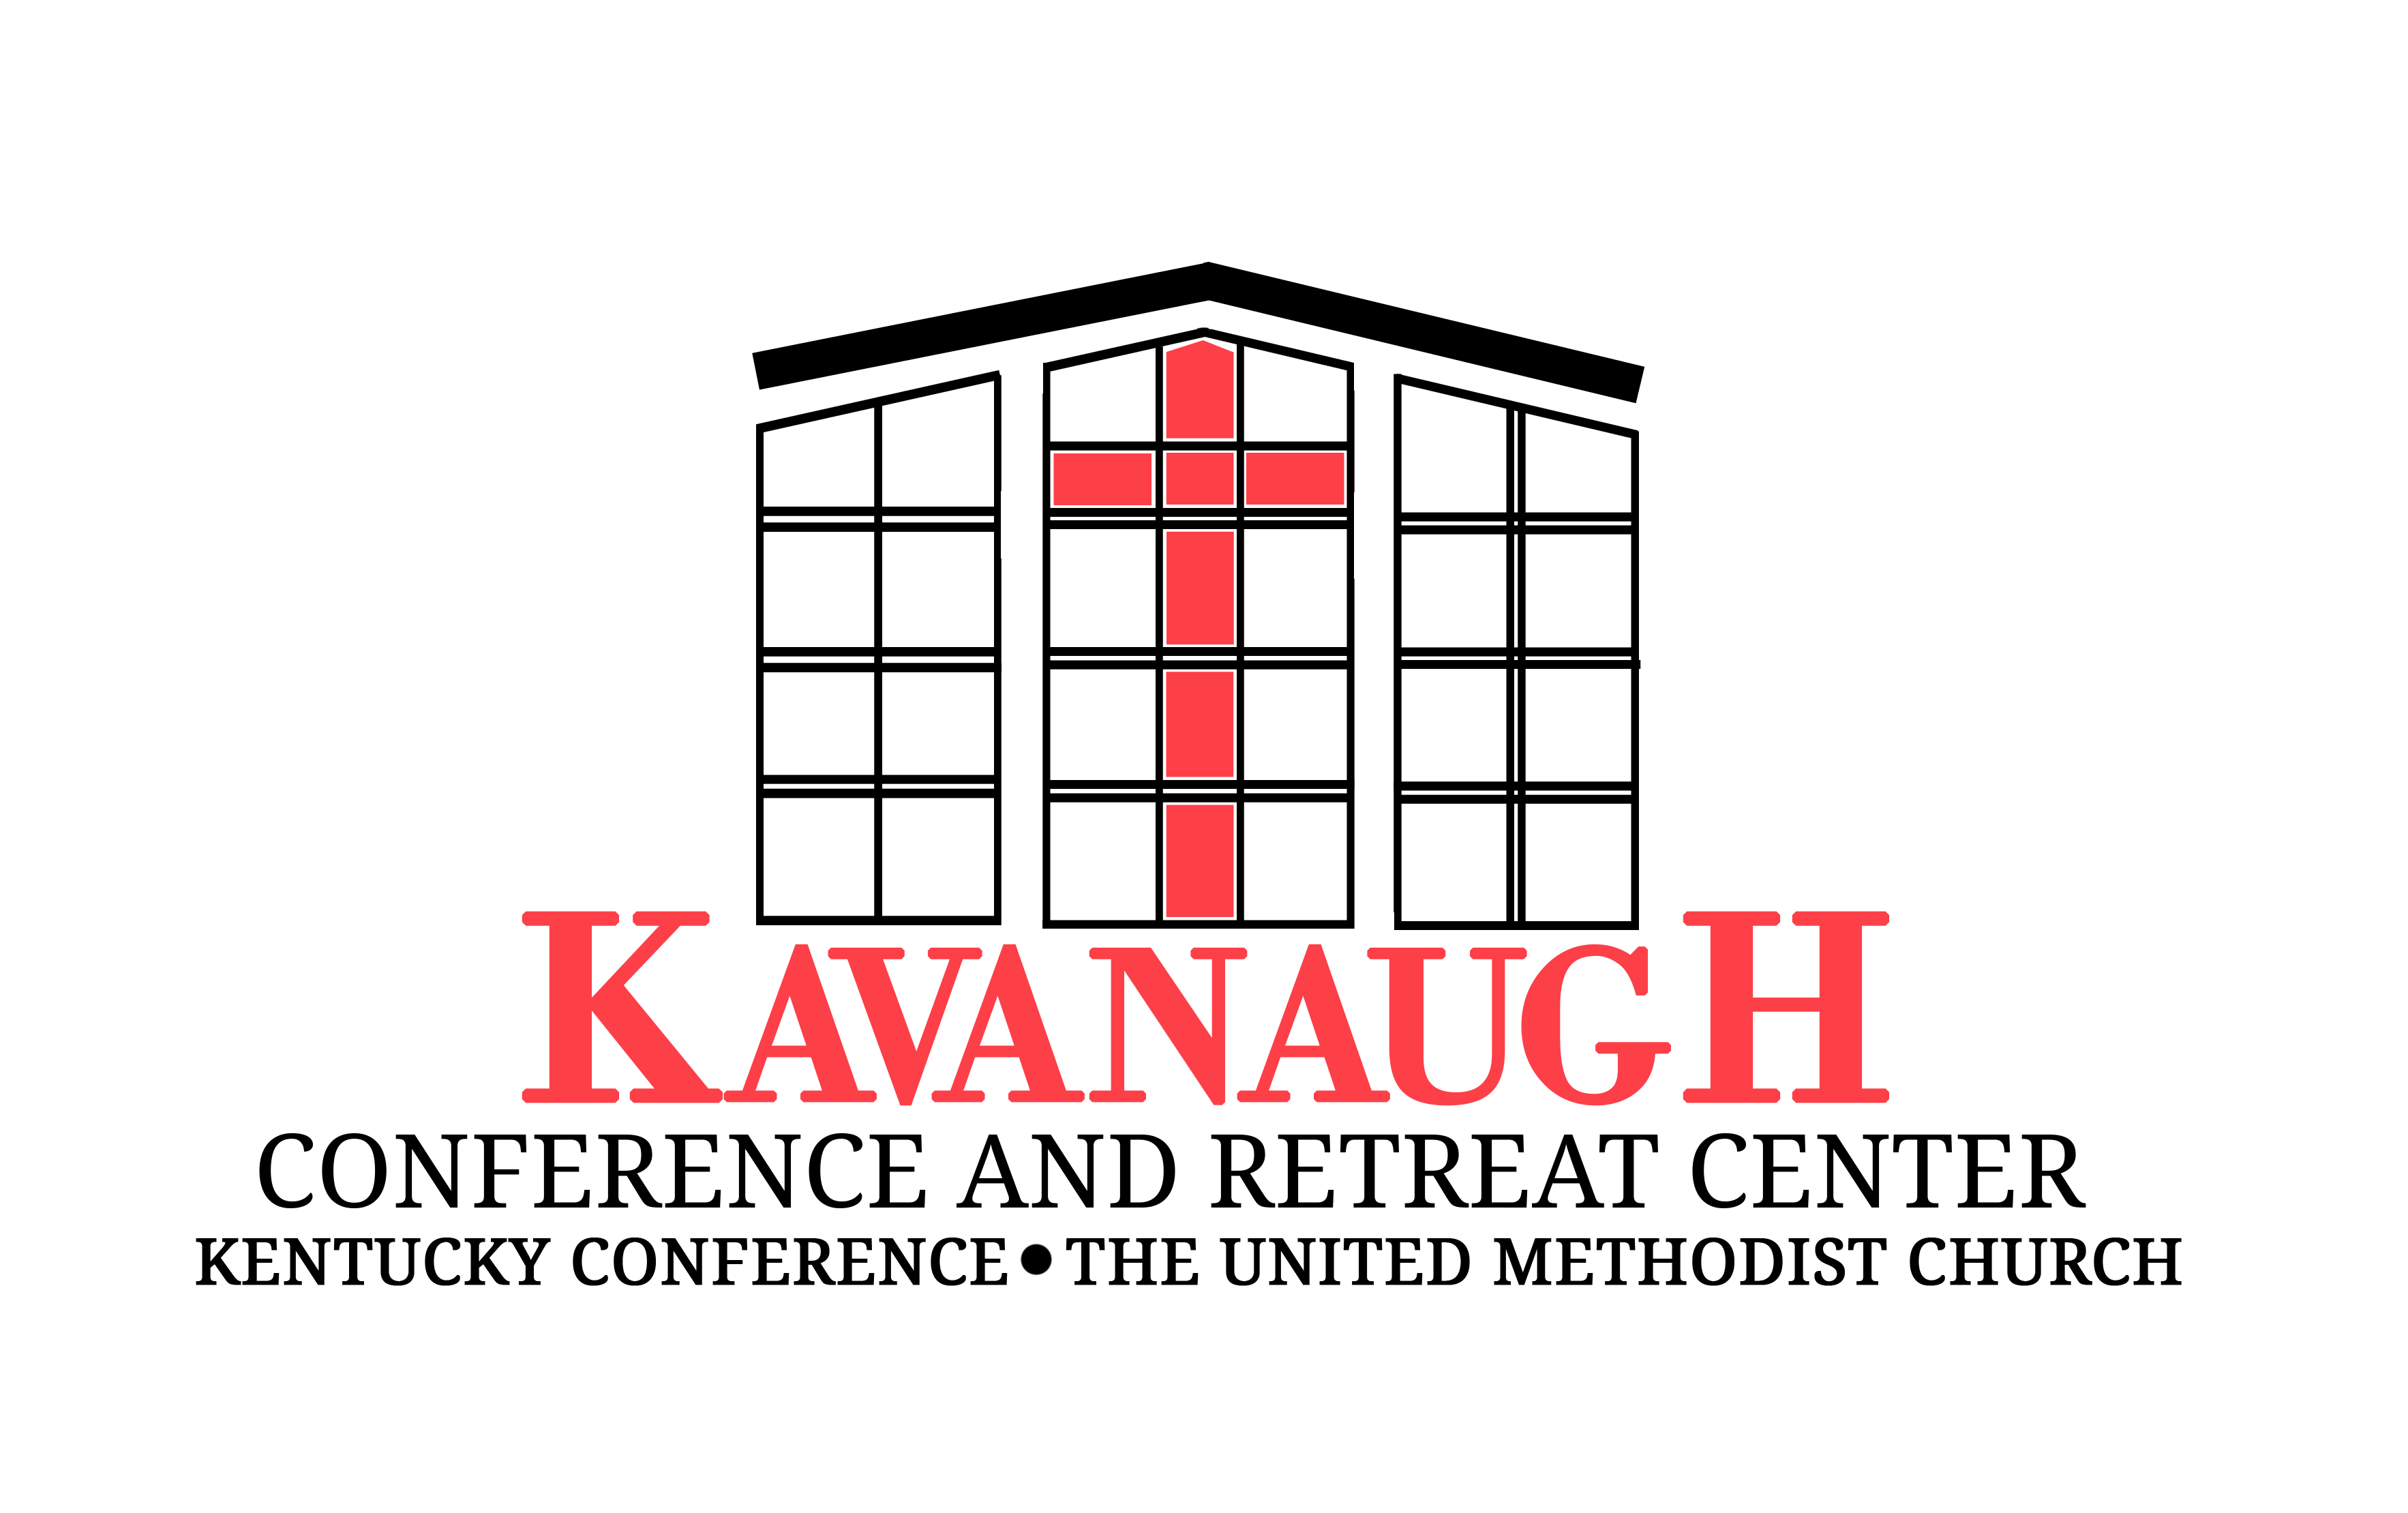 Kavanaugh Conference & Retreat Center